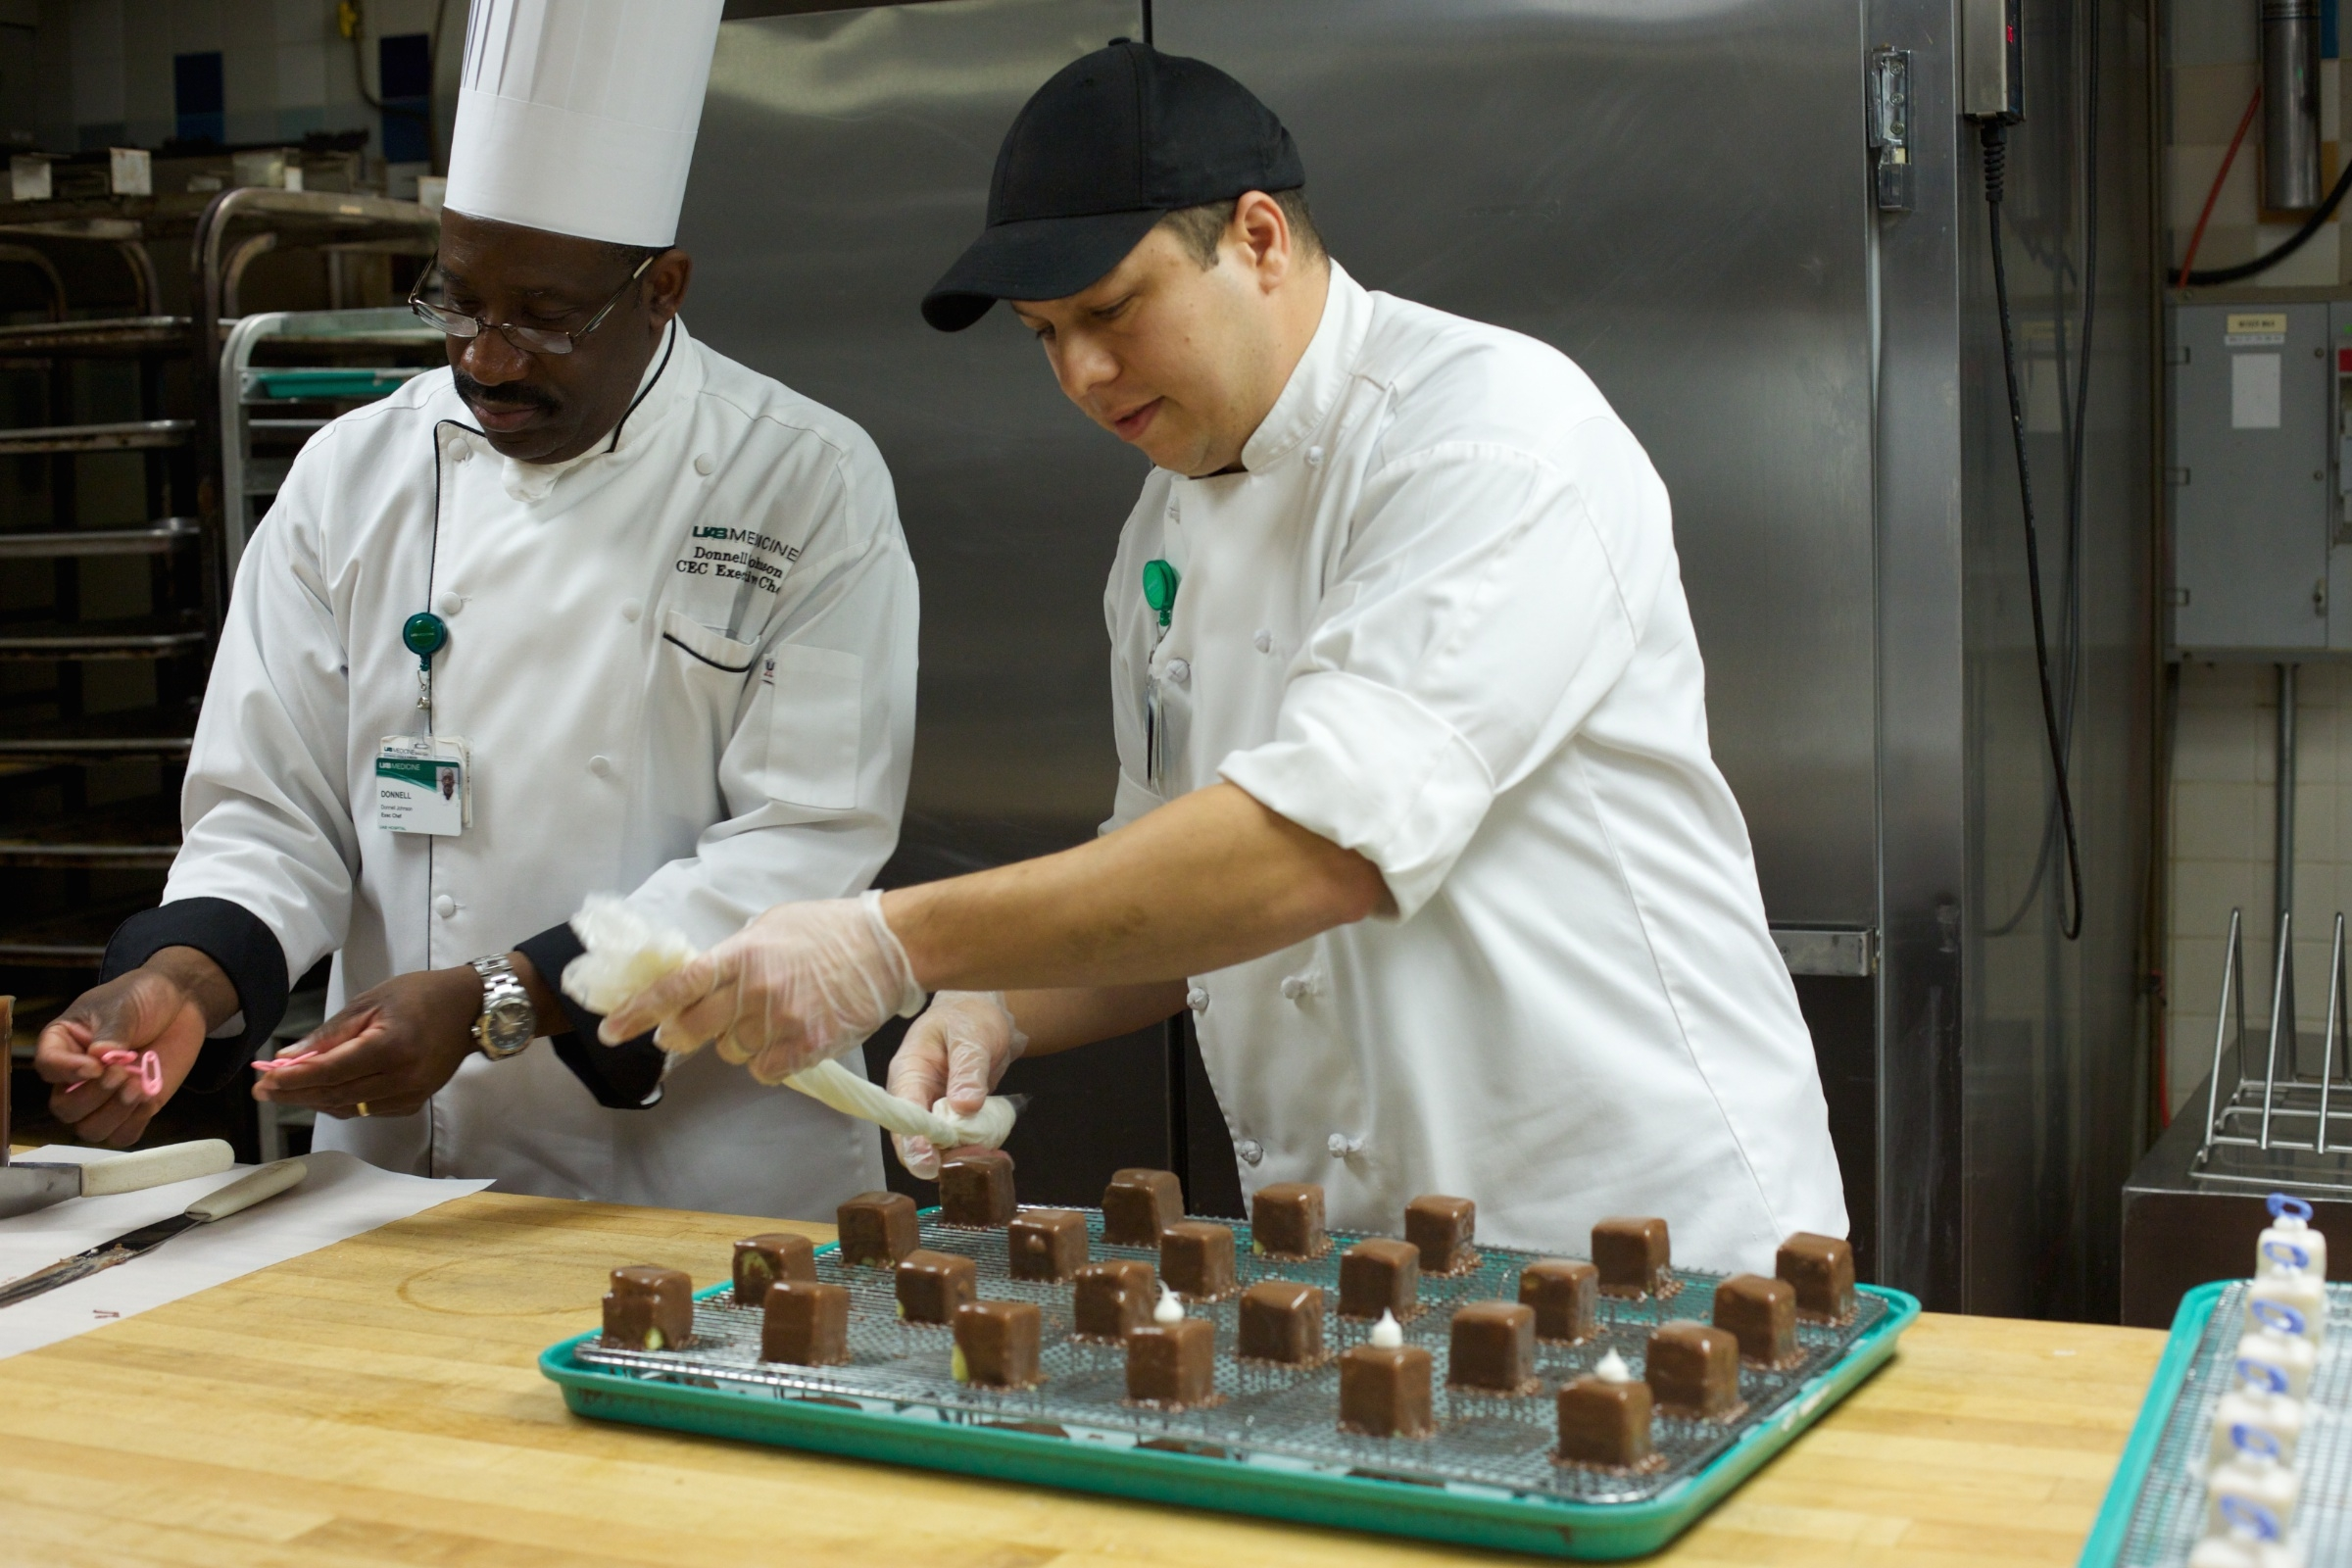 food and nutrition services uab medicine food and nutrition services at uab medicine is an opportunity to improve your culinary skills learn how to cook specialized equipment